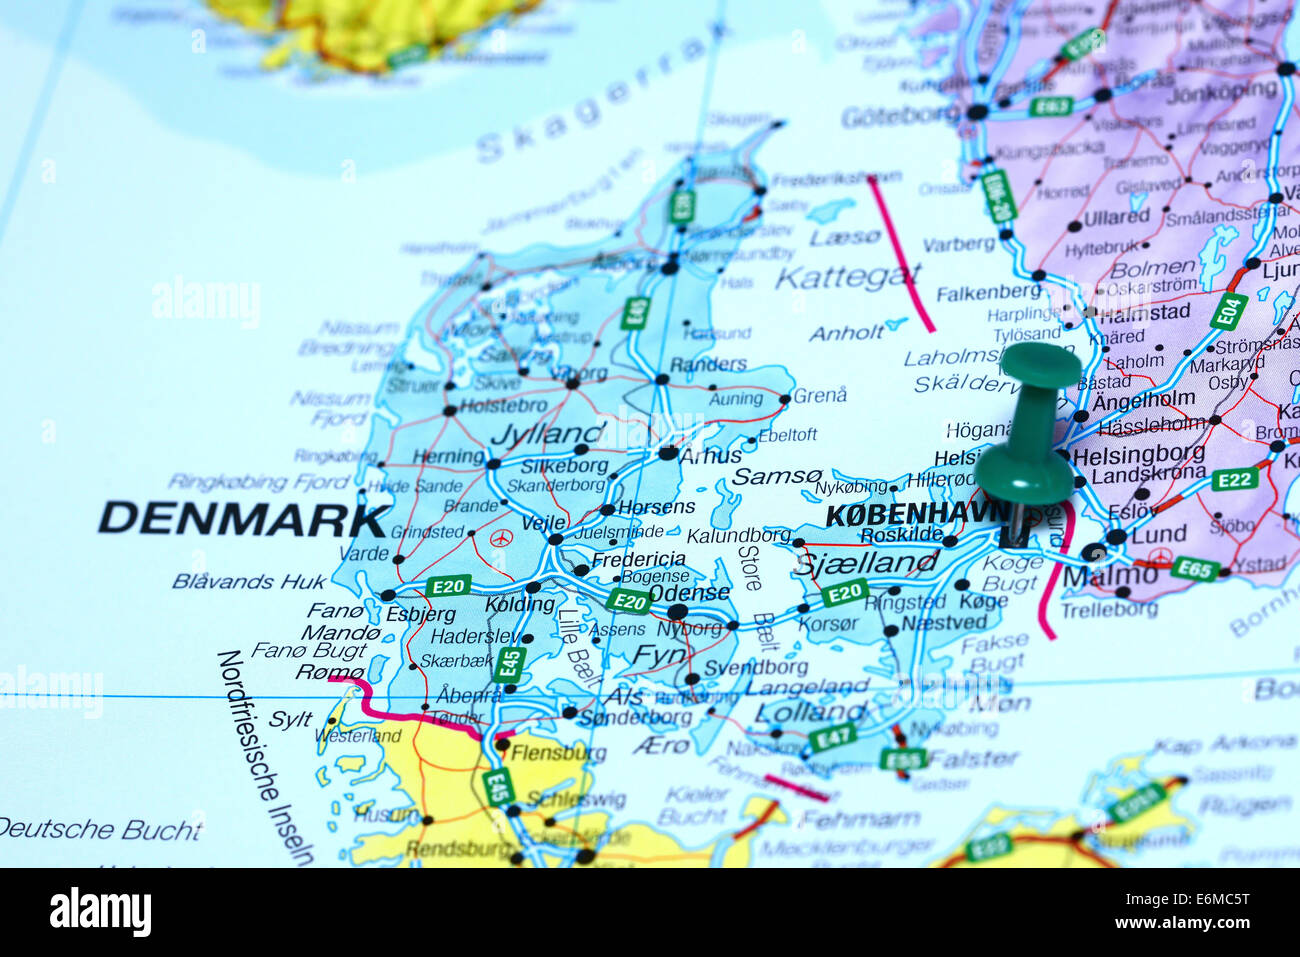 Copenhagen pinned on a map of europe Stock Photo Royalty Free Image